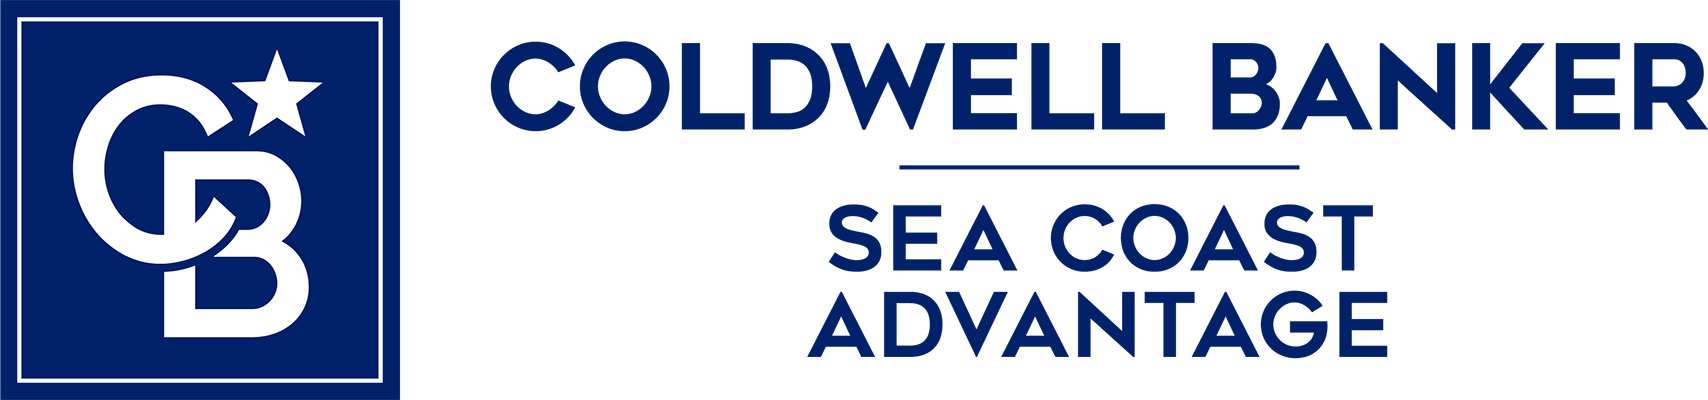 Tom Rieber - Coldwell Banker Sea Coast Advantage Realty